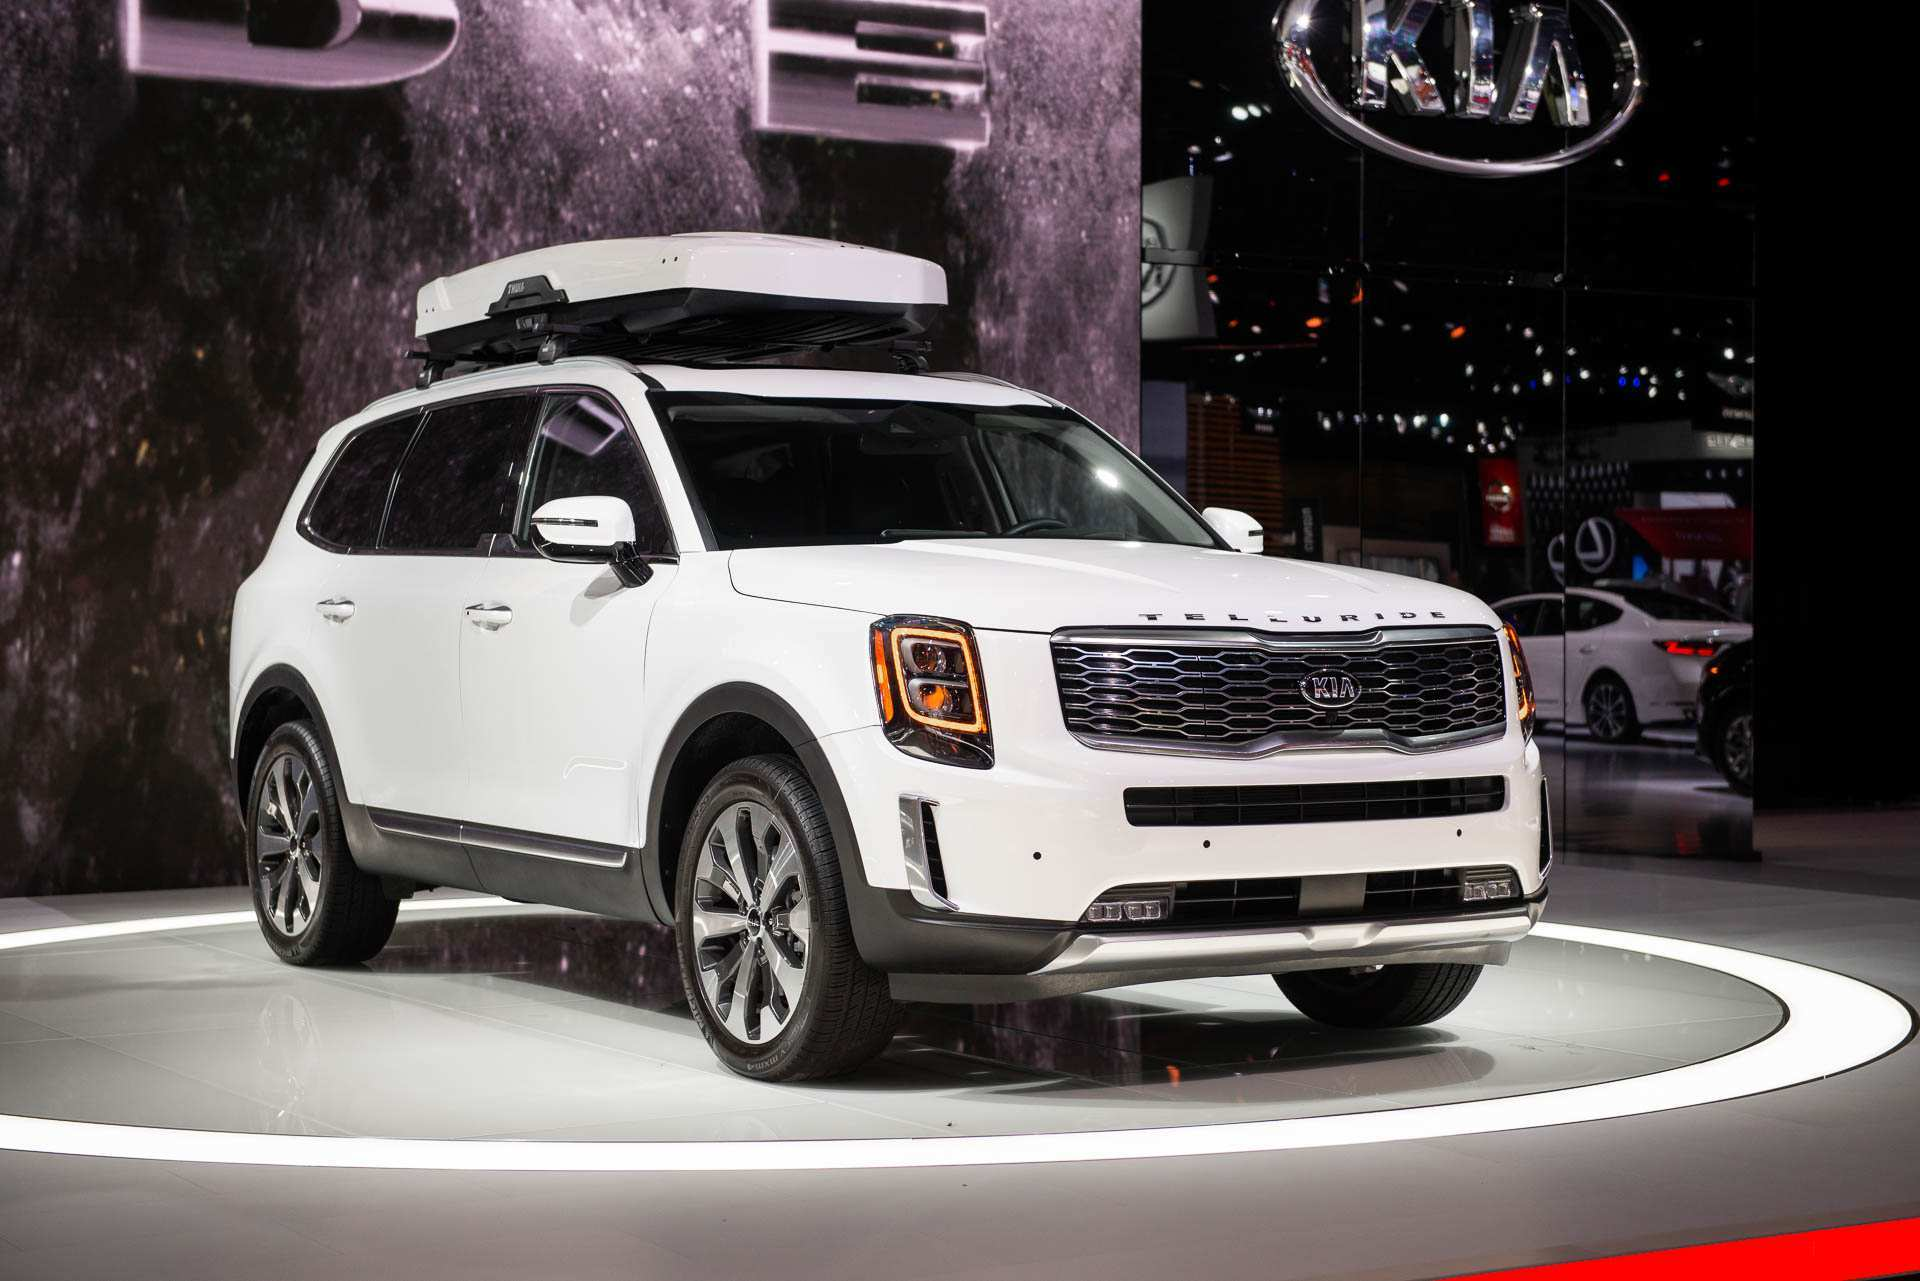 38 Great 2020 Kia Telluride Build And Price Specs and Review for 2020 Kia Telluride Build And Price